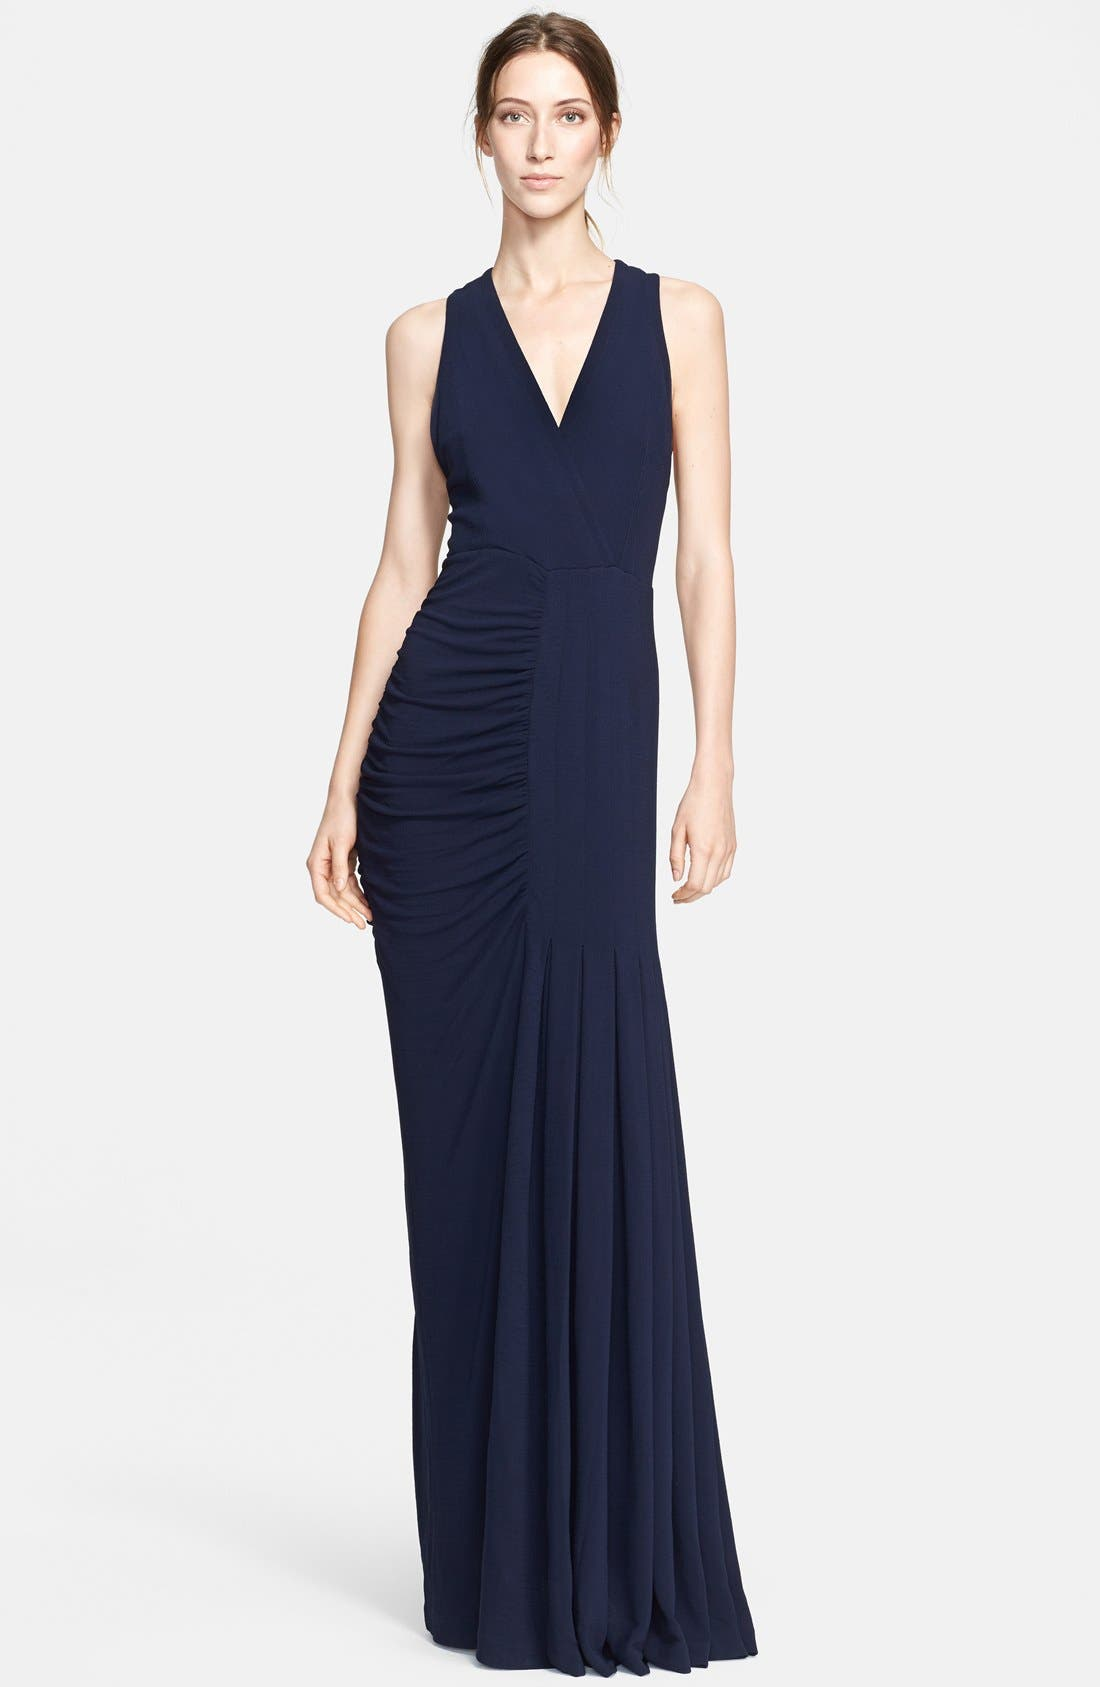 Alternate Image 1 Selected - Yigal Azrouël Sleeveless Gown